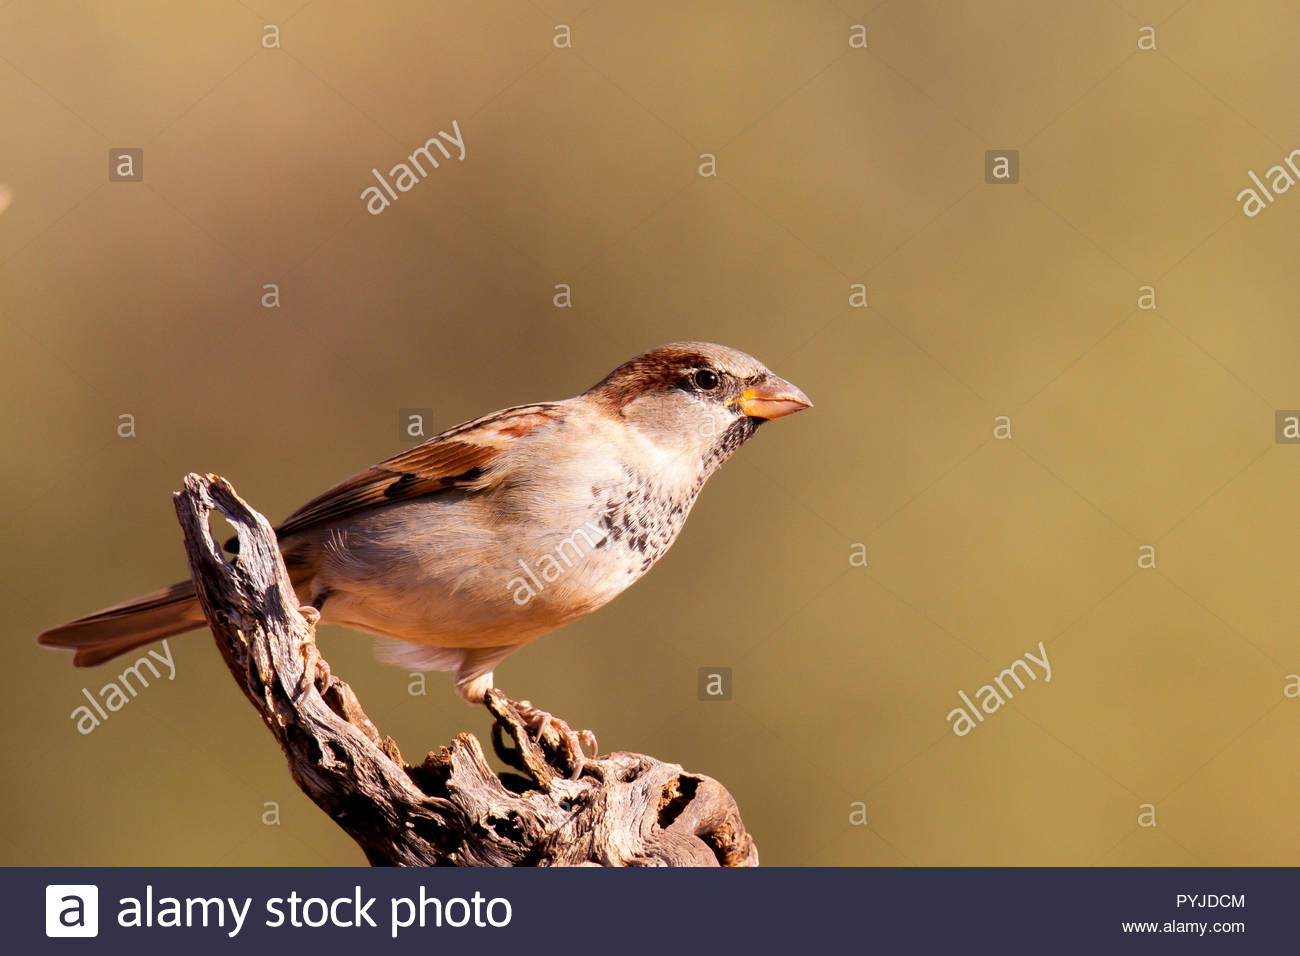 Slate-colored fox sparrow highlighted against soft blur of background. - Stock Image